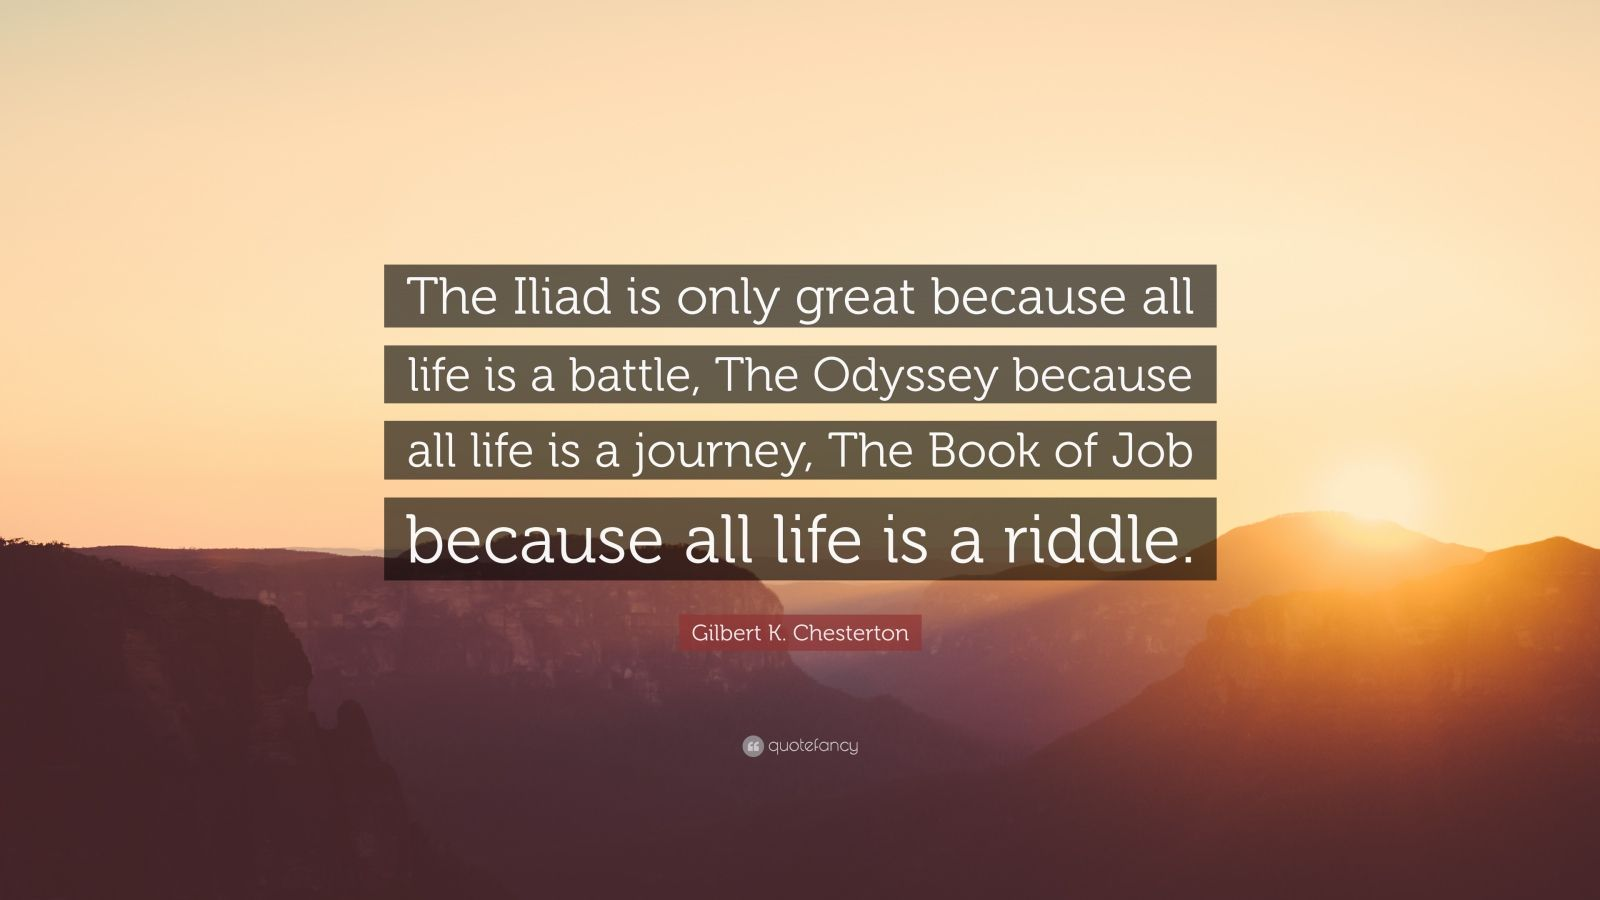 """Gilbert K. Chesterton Quote: """"The Iliad is only great because all life is a battle, The Odyssey because all life is a journey, The Book of Job because all life is a riddle."""""""